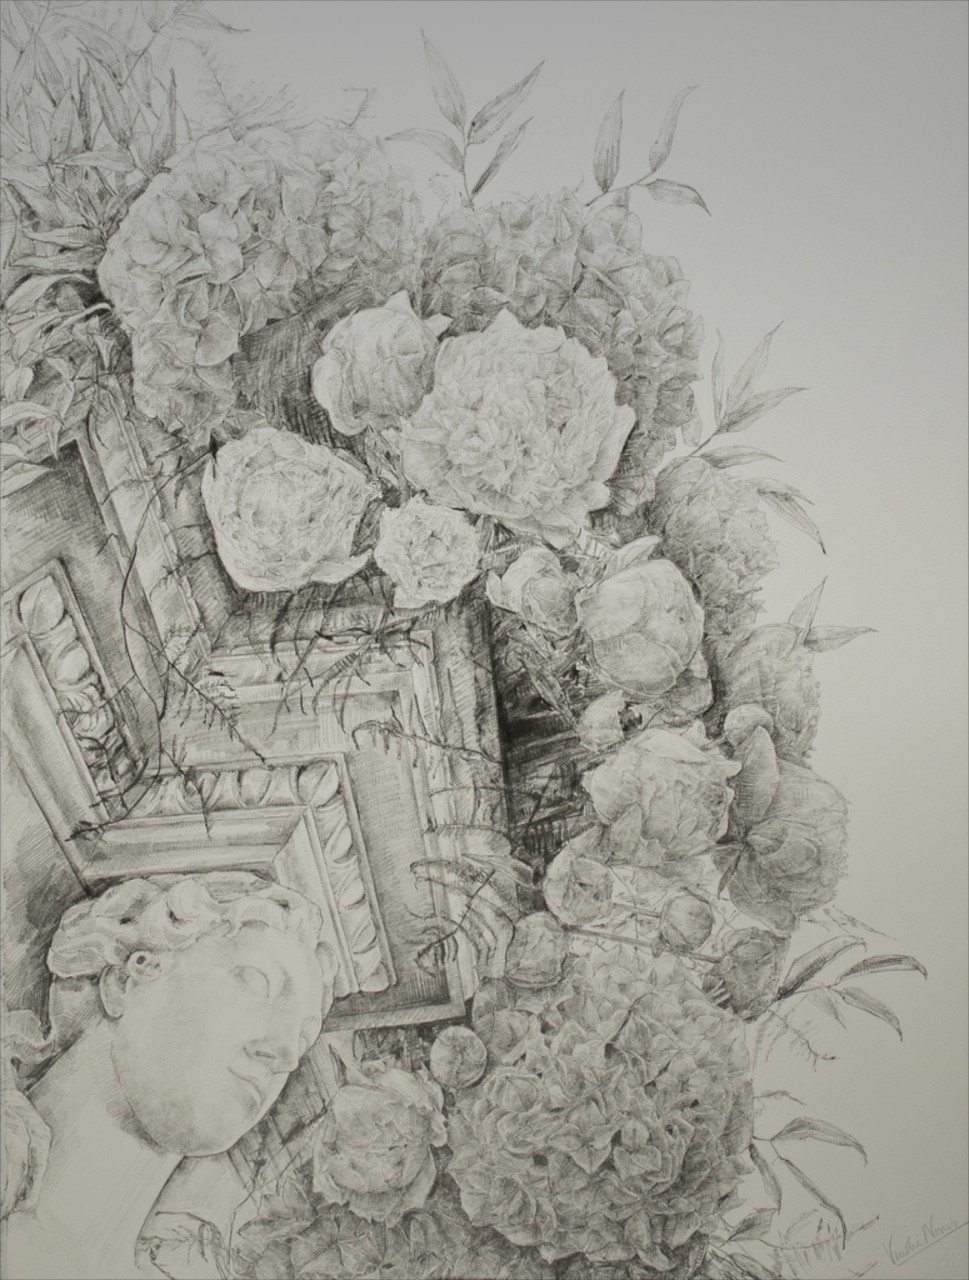 Adam Fireplace 2, graphite, 76x57cm